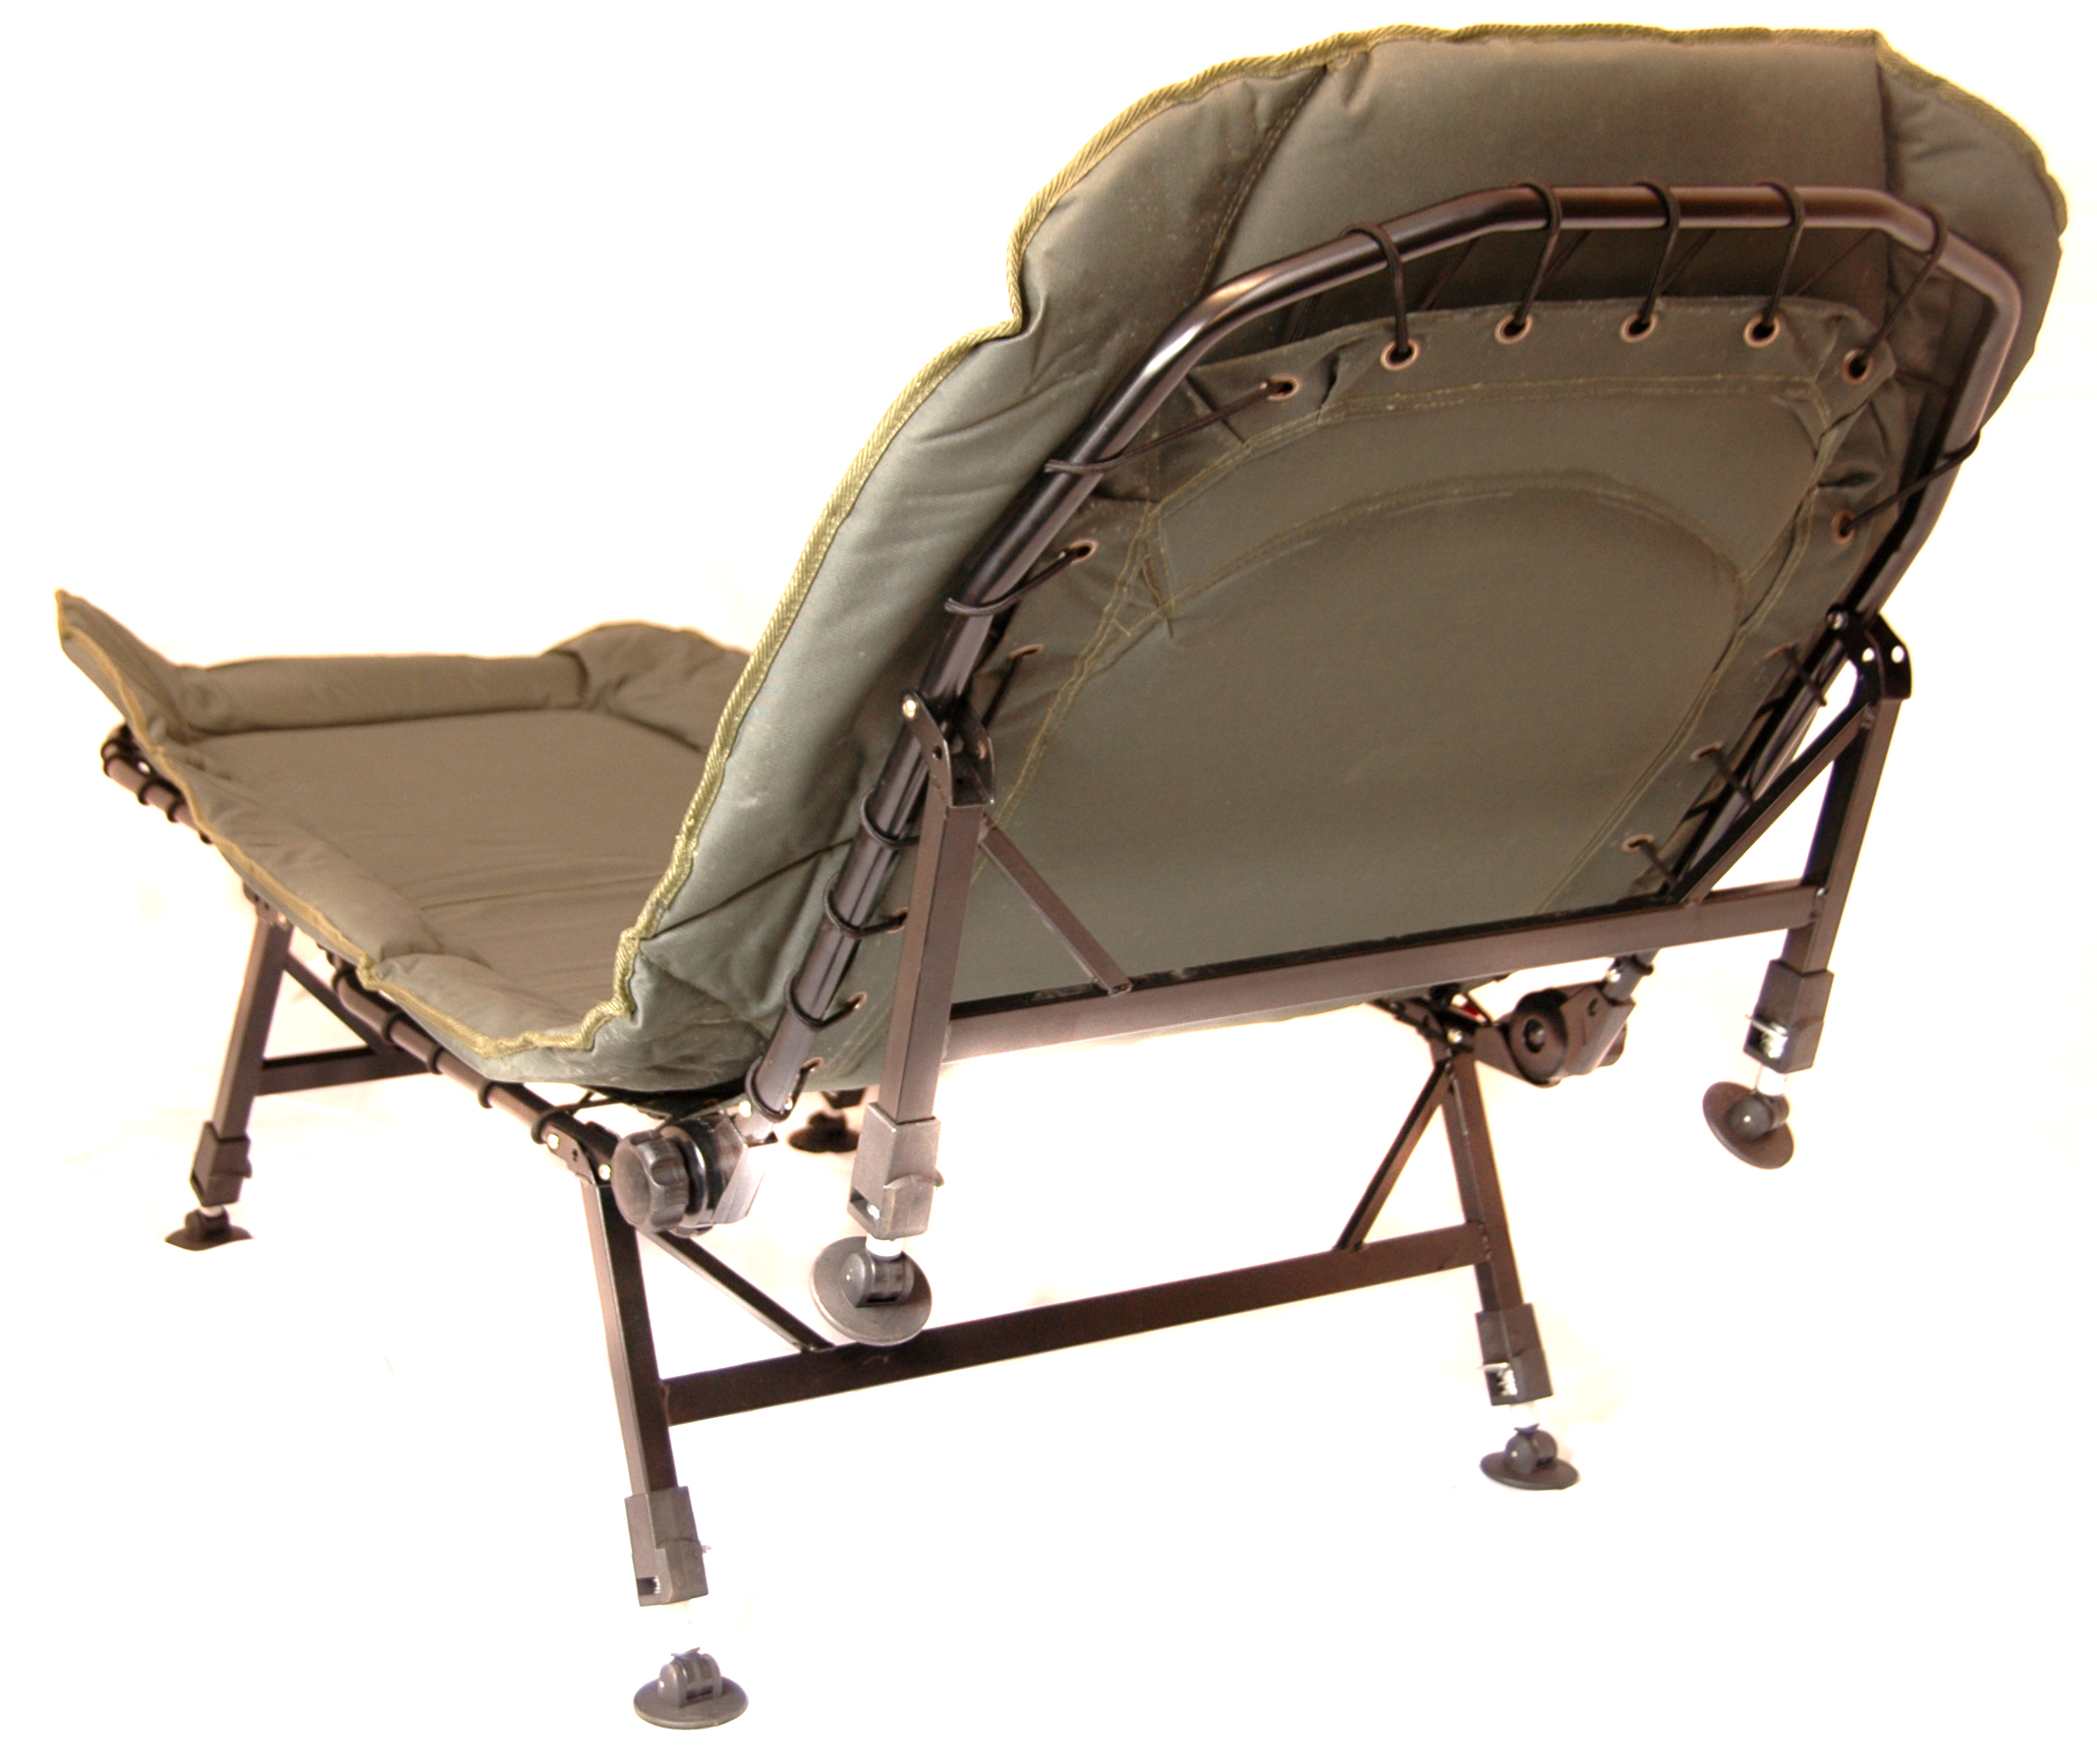 chair leg fishing floats jason recliner covers australia bison six bedchair free next day delivery